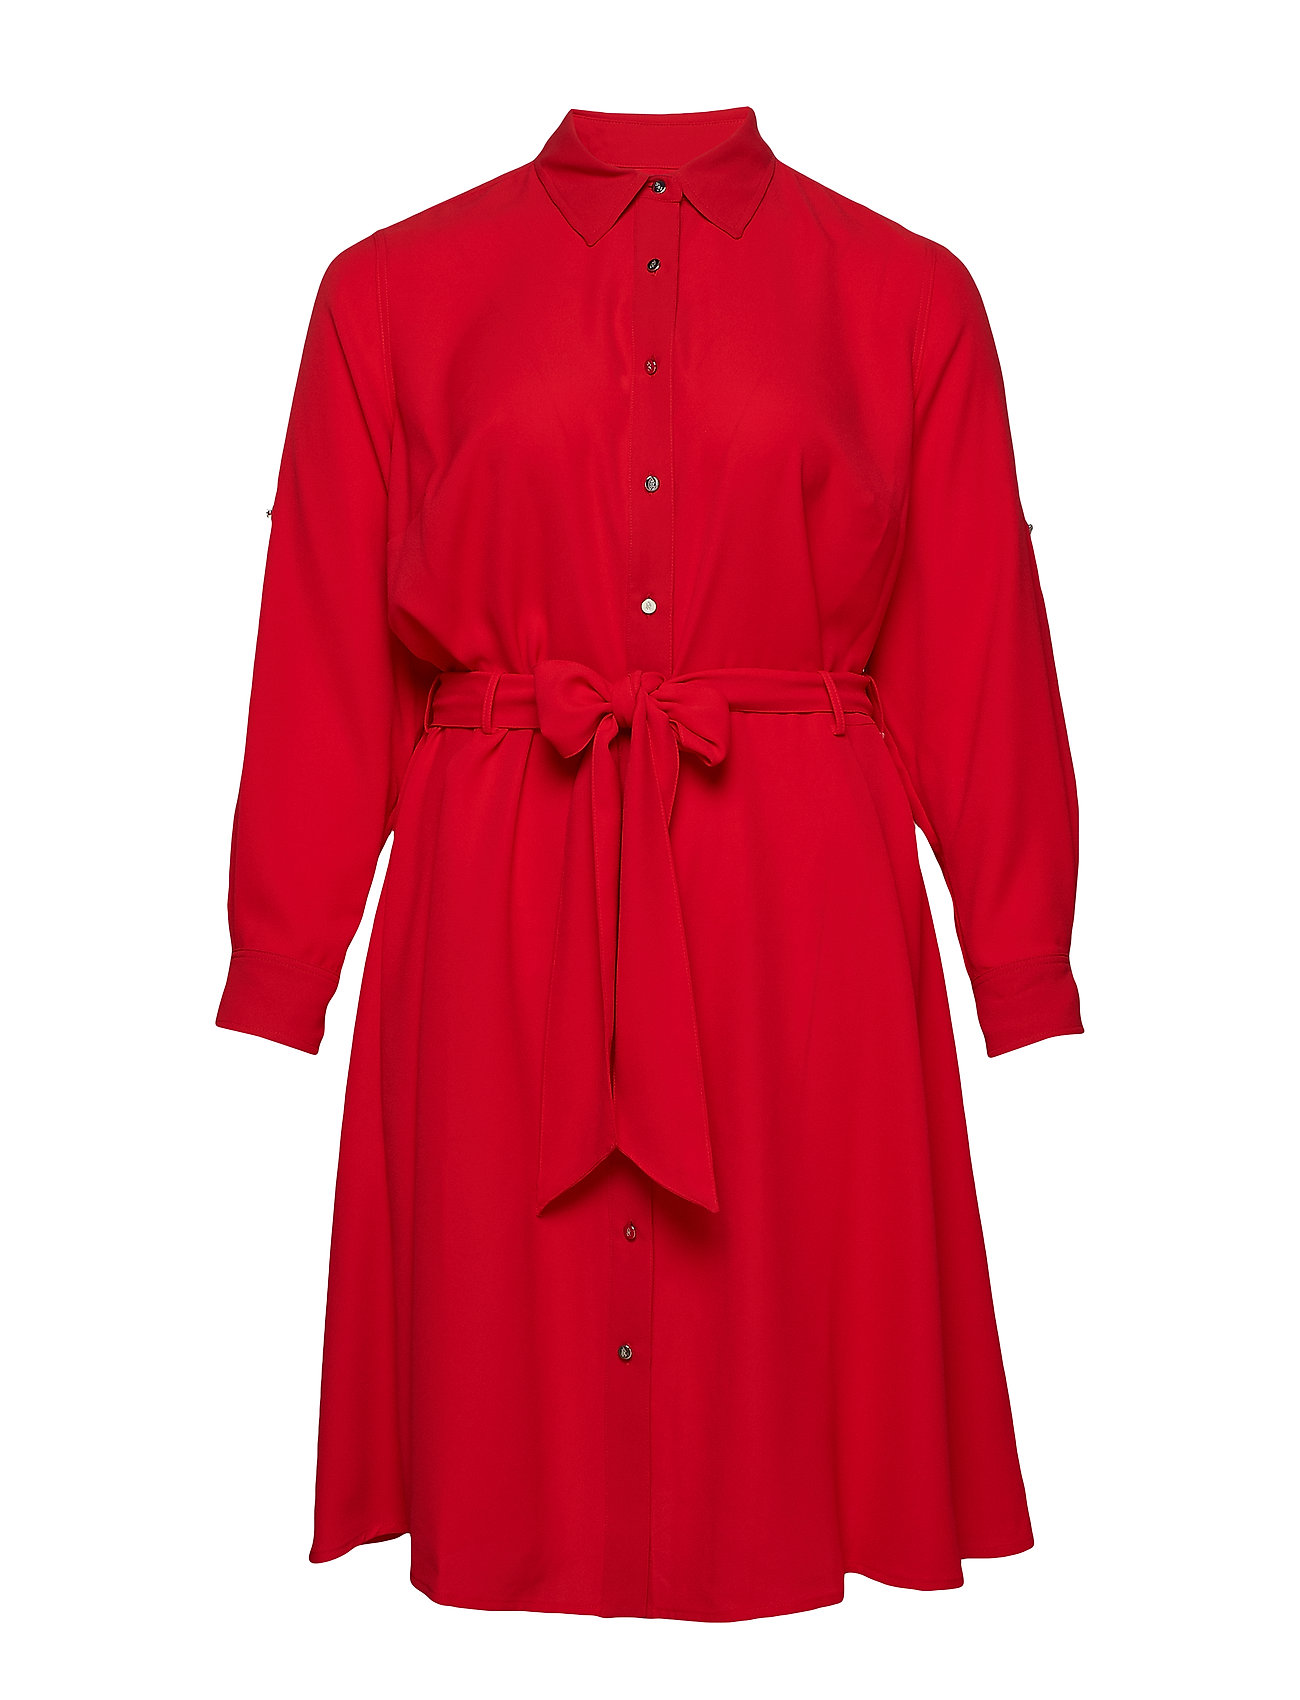 c26a2288bf4 Plus Size Georgette Shirtdress (Crimson) (1097.25 kr) - Lauren Ralph ...